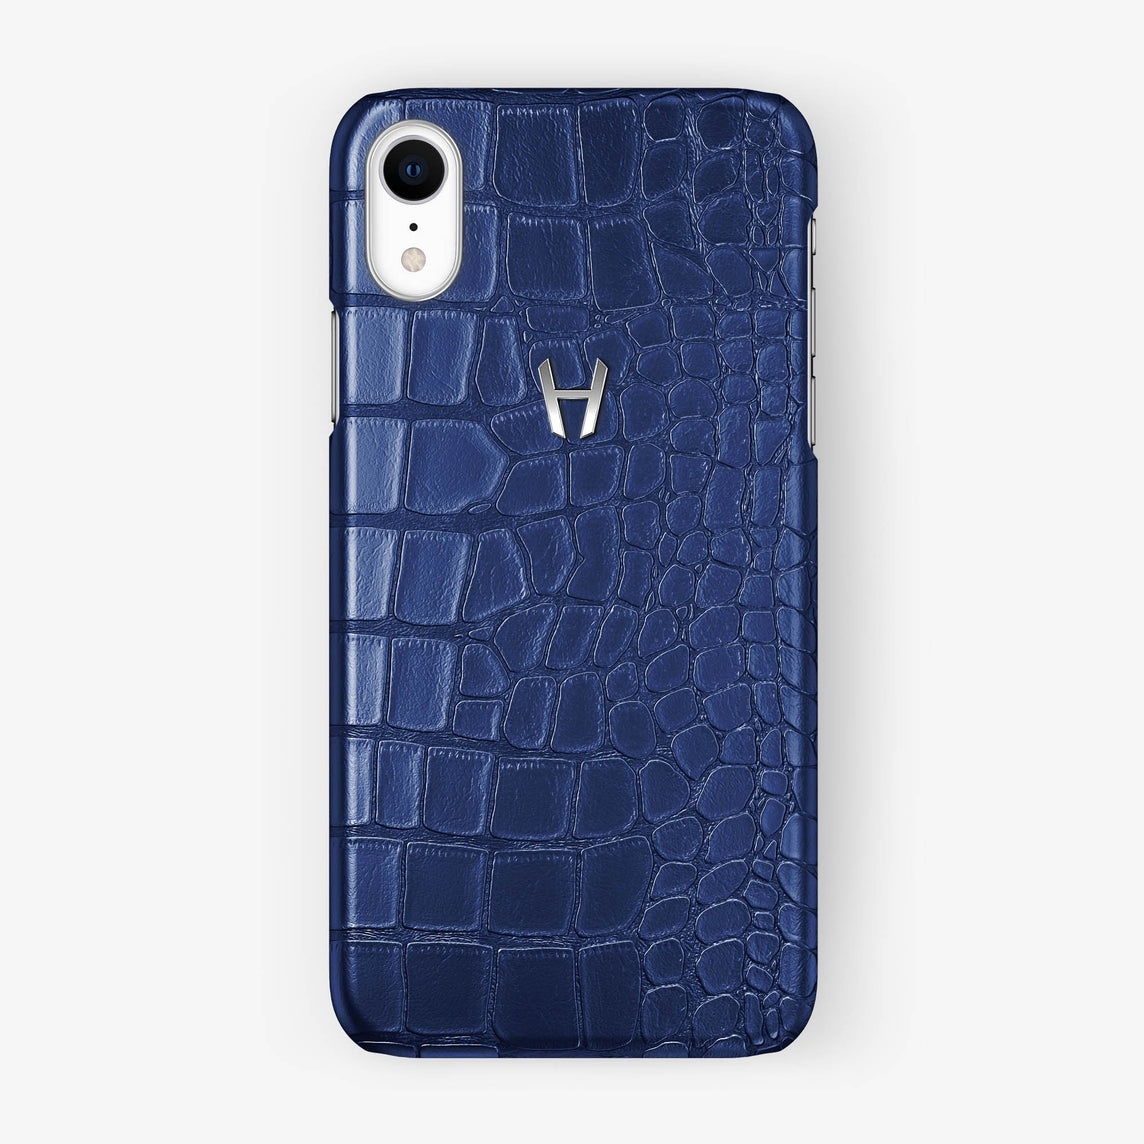 Alligator [iPhone Case] [model:iphone-xr-case] [colour:navy-blue] [finishing:stainless-steel]